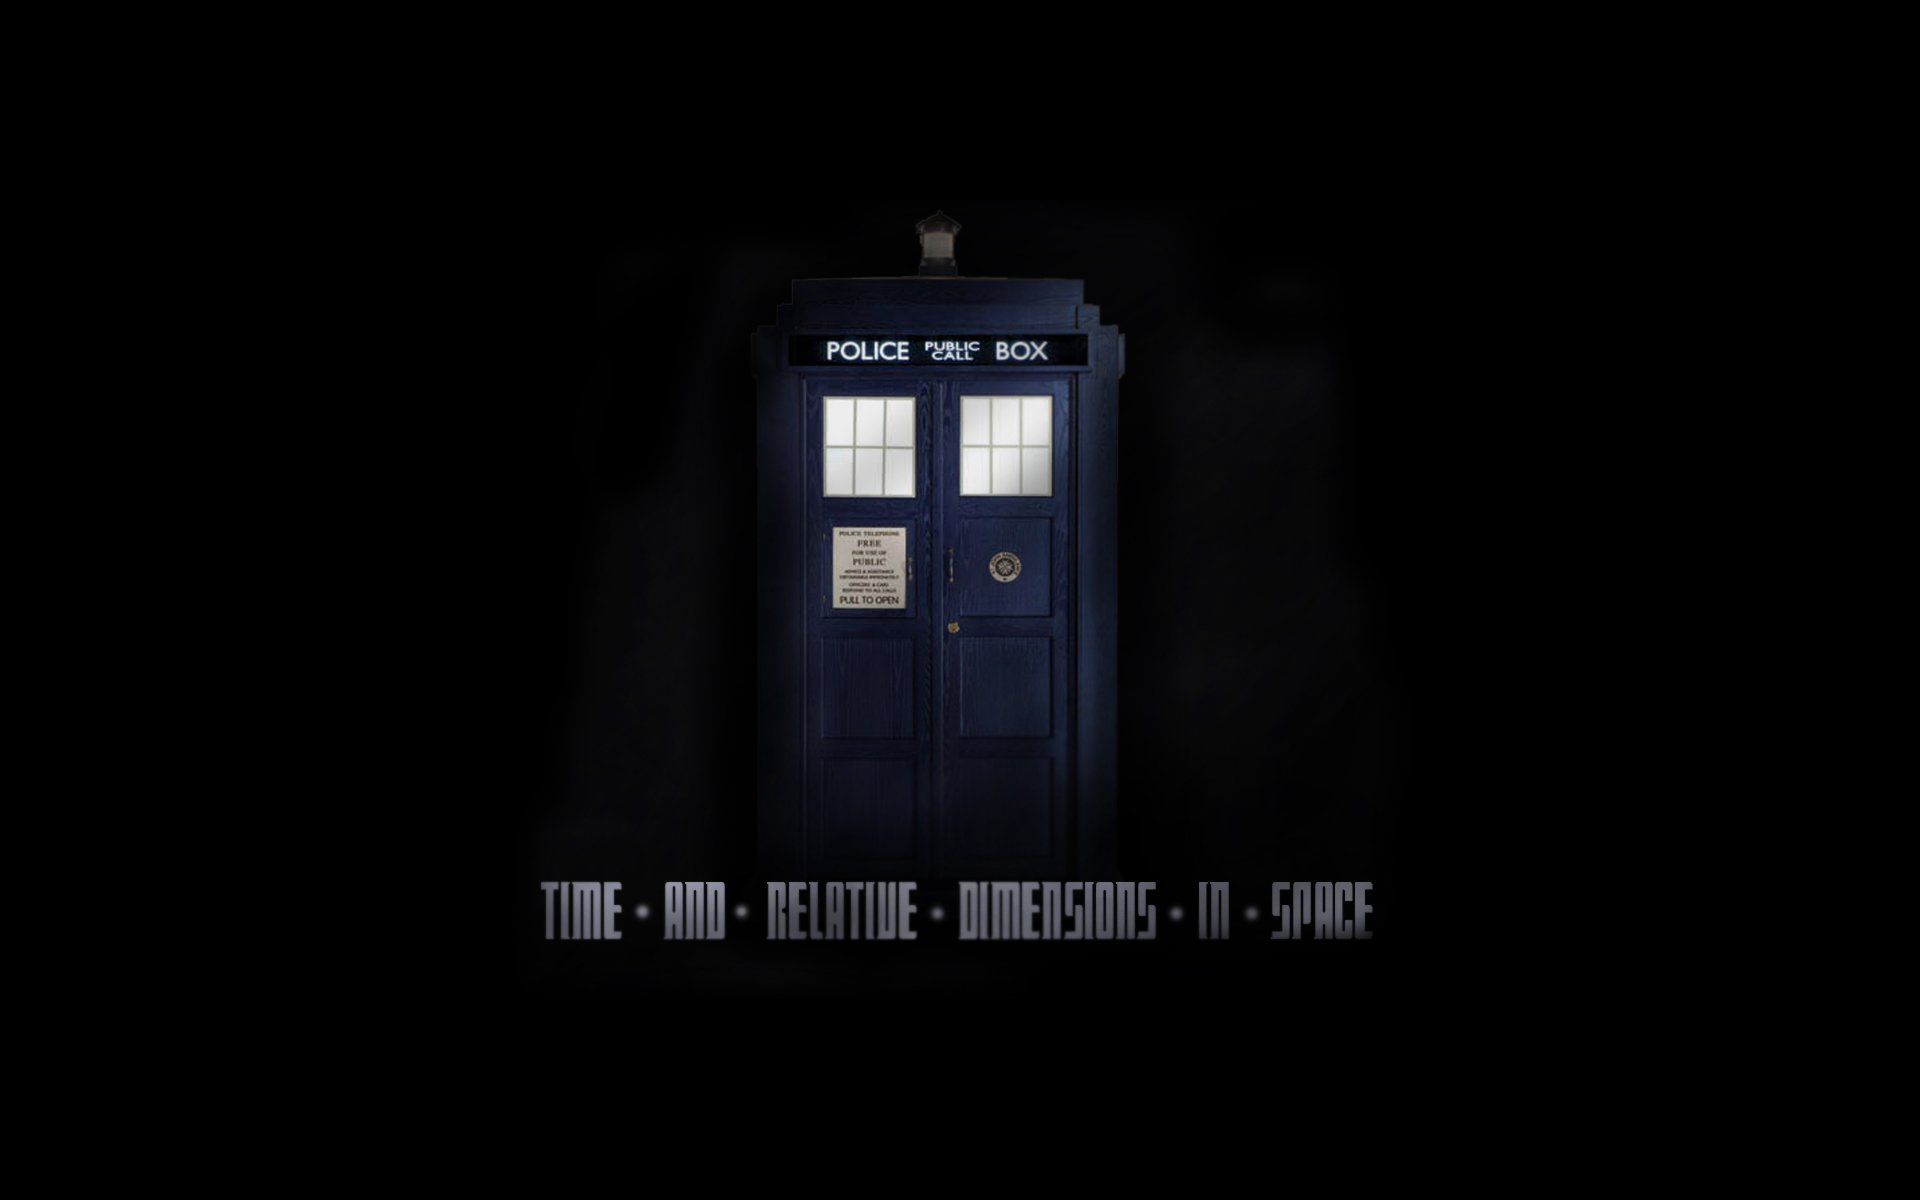 Tardis Wallpaper Iphone Tardis doctor who wallpaper 1920x1200